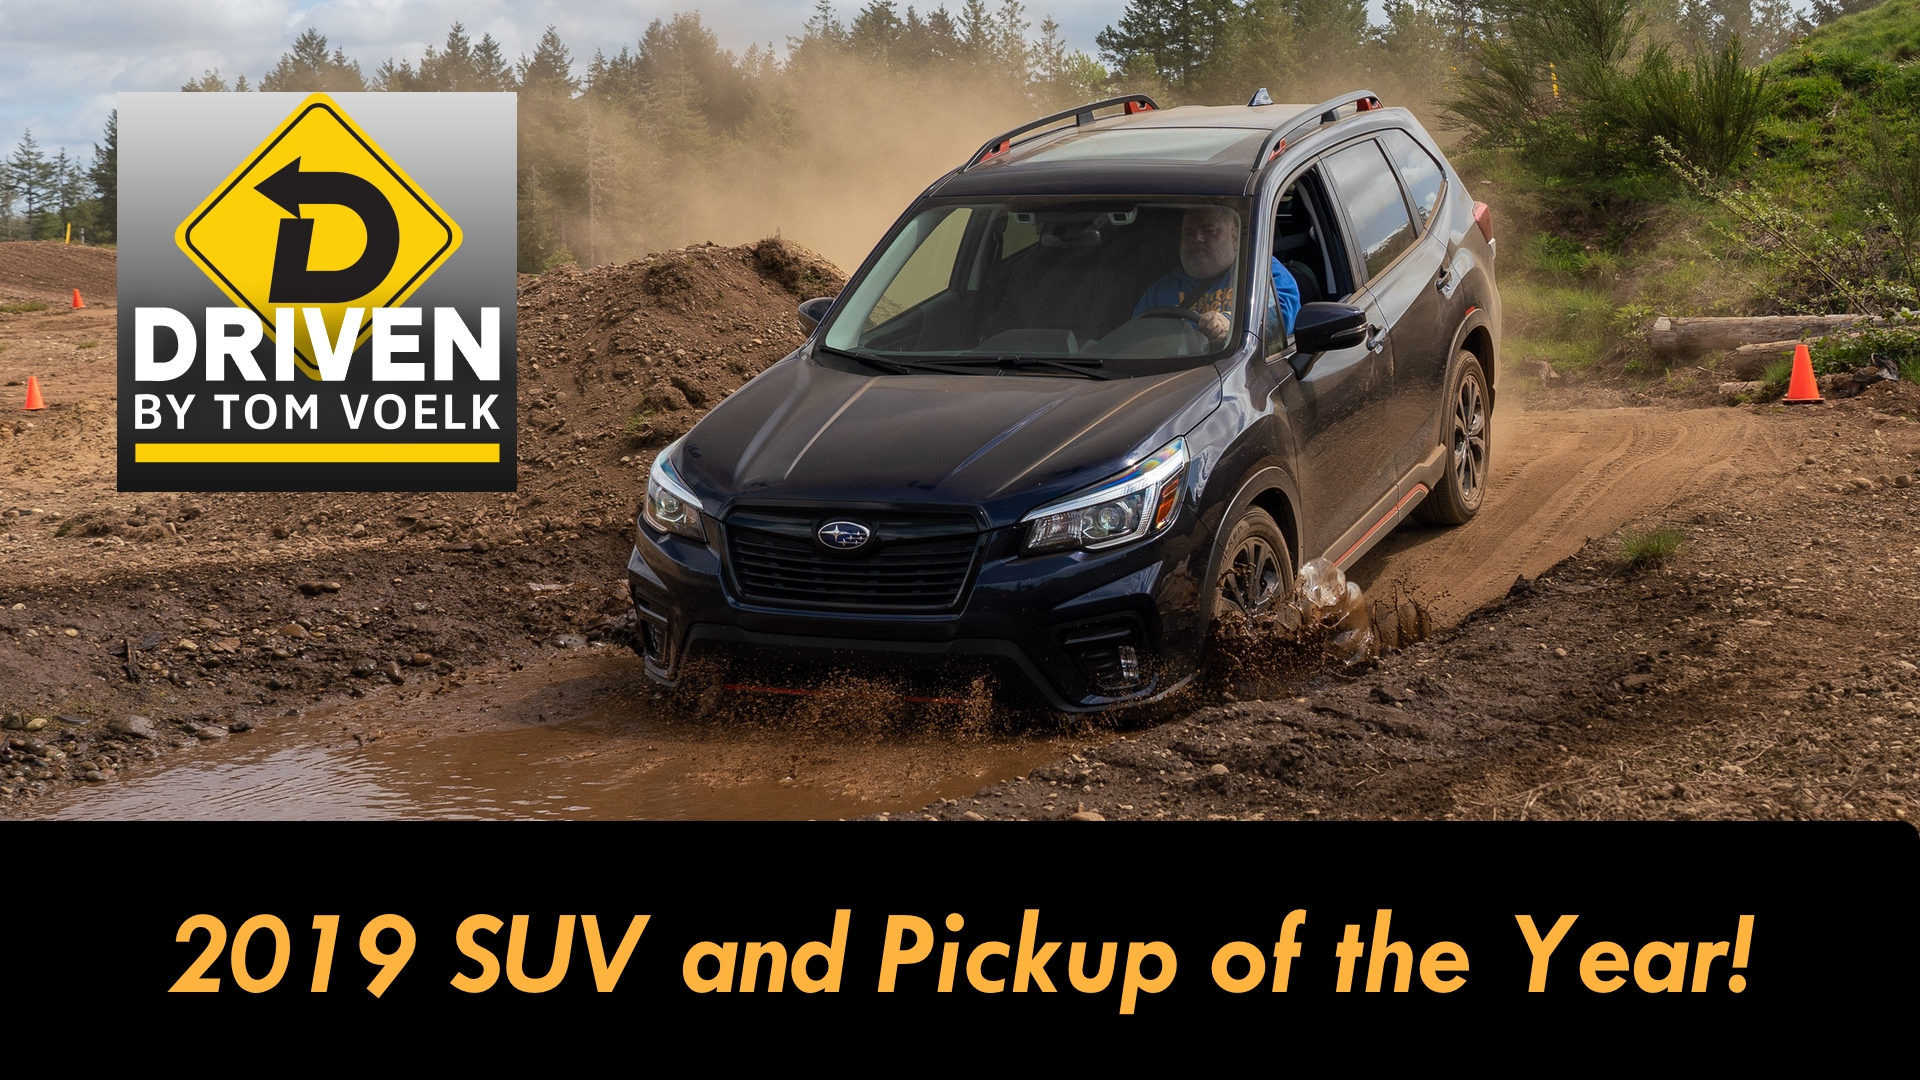 Artwork for Mudfest! The 2019 SUV and Pickup of the Year Competition